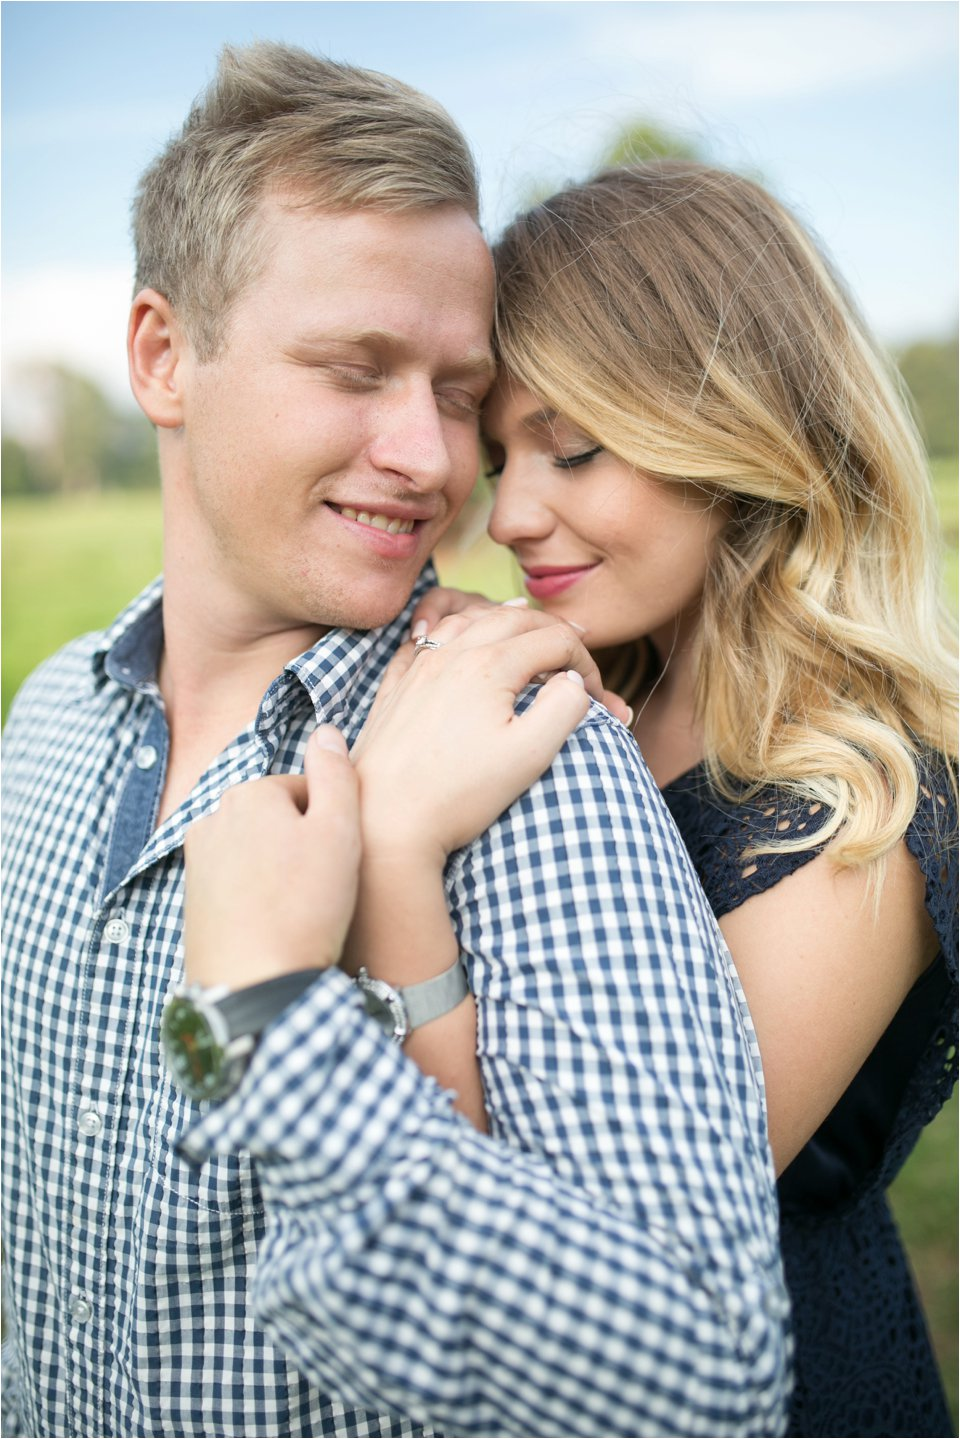 Irene farm - Engagement_0017